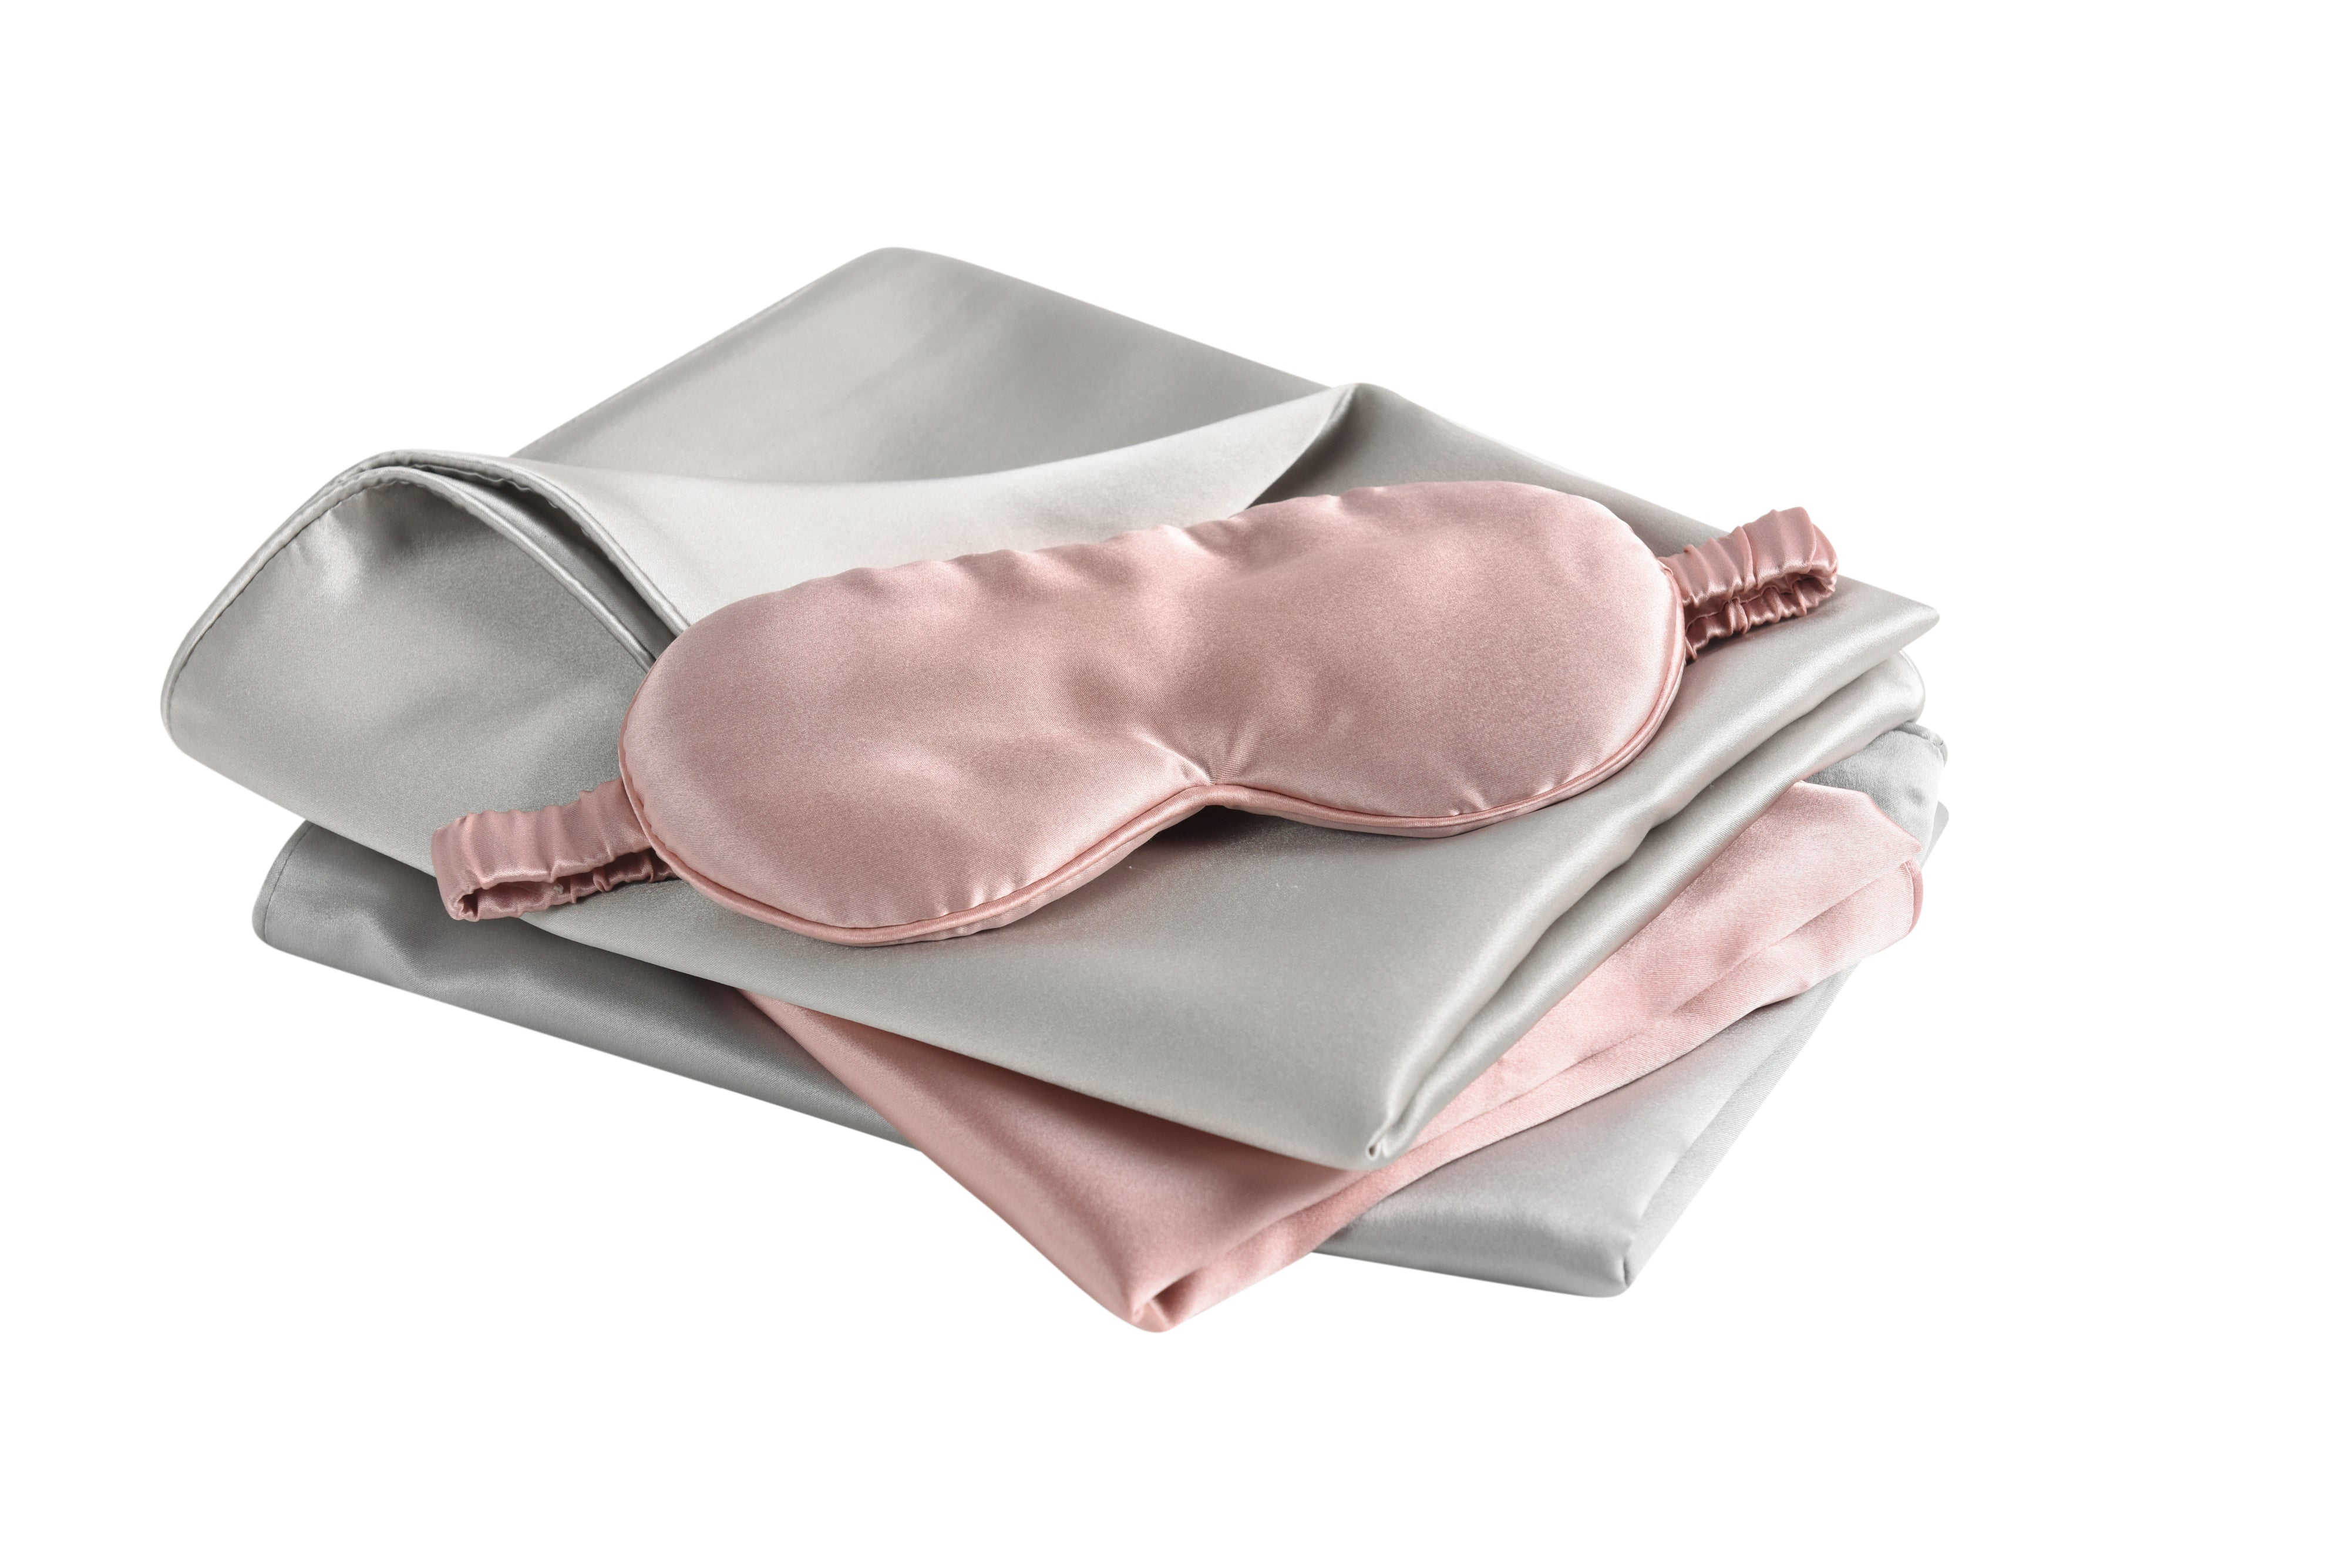 Mulberry Silk Pillowcase + Sleeping Mask Bundle (Use code: PILLOWCASE10, up to $18.89)